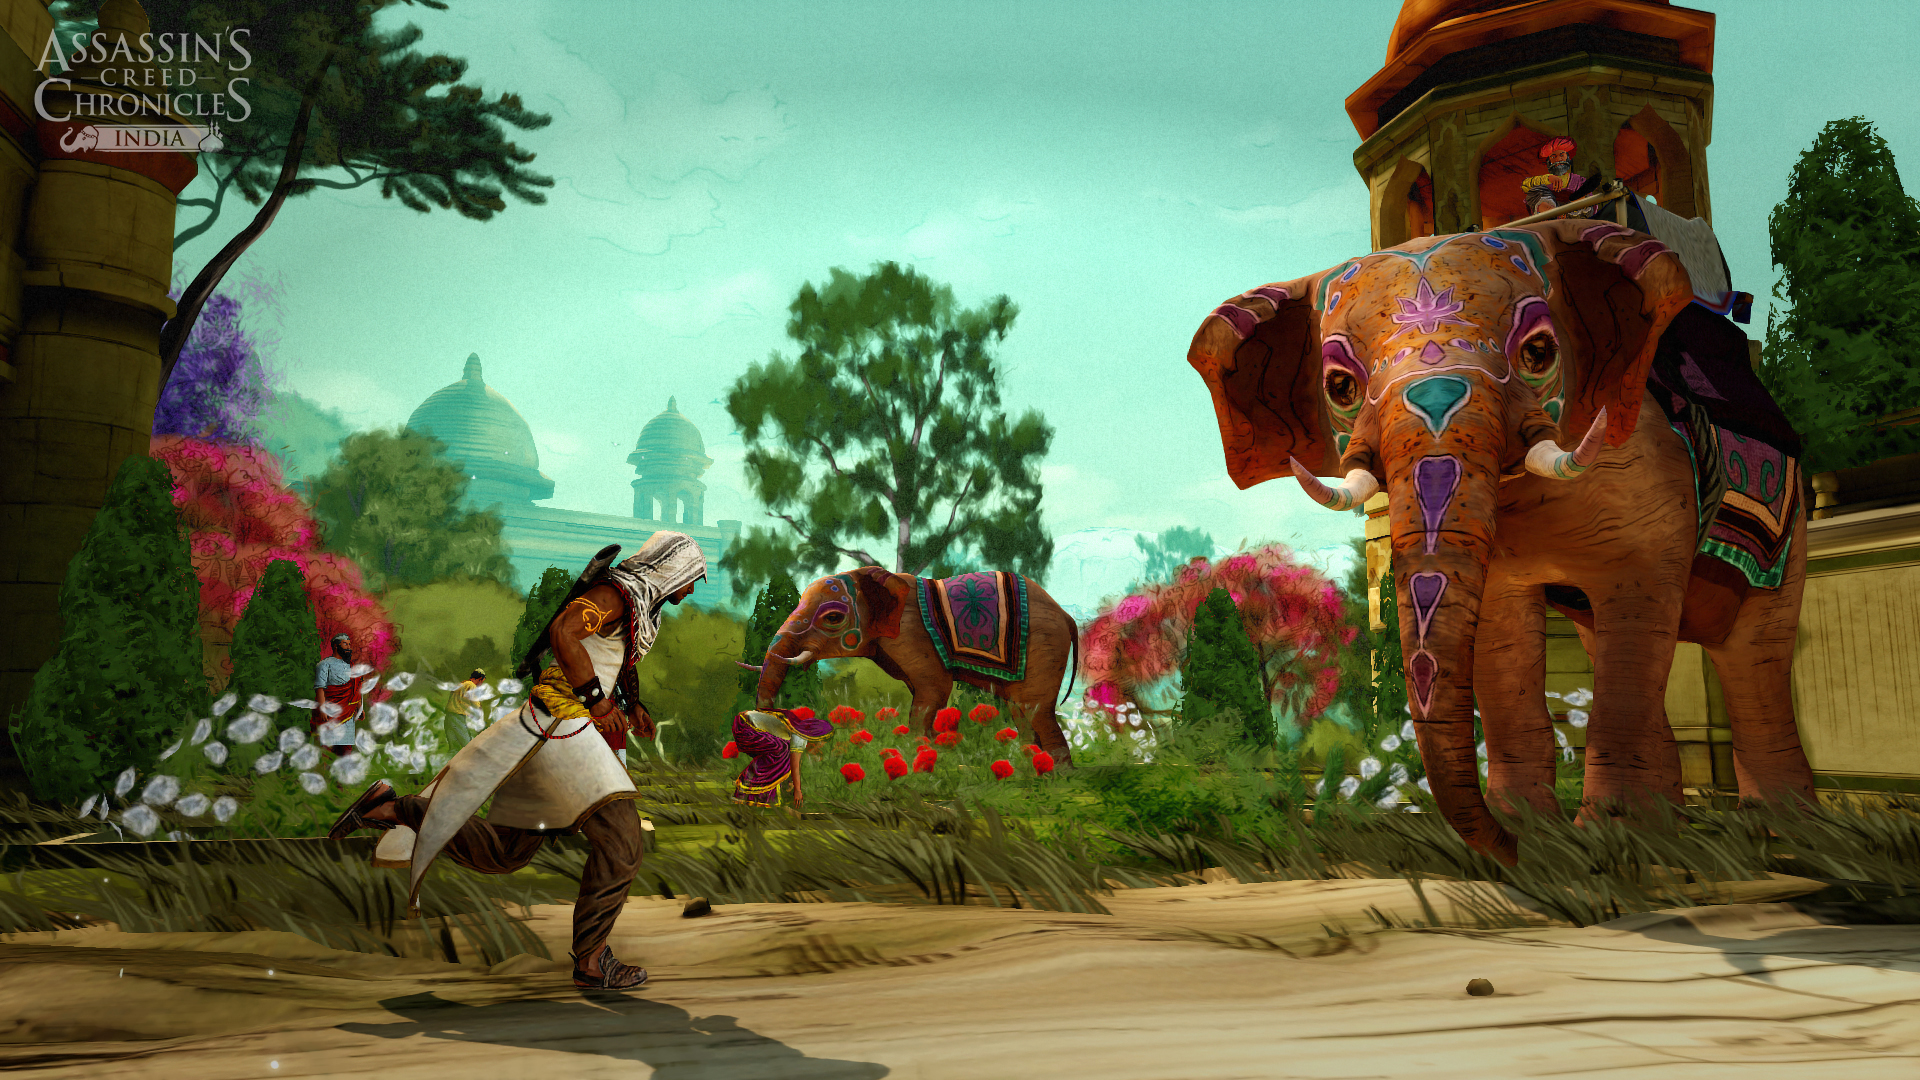 Assassin's Creed Chronicles: India (PS4) - new setting, familiar gameplay